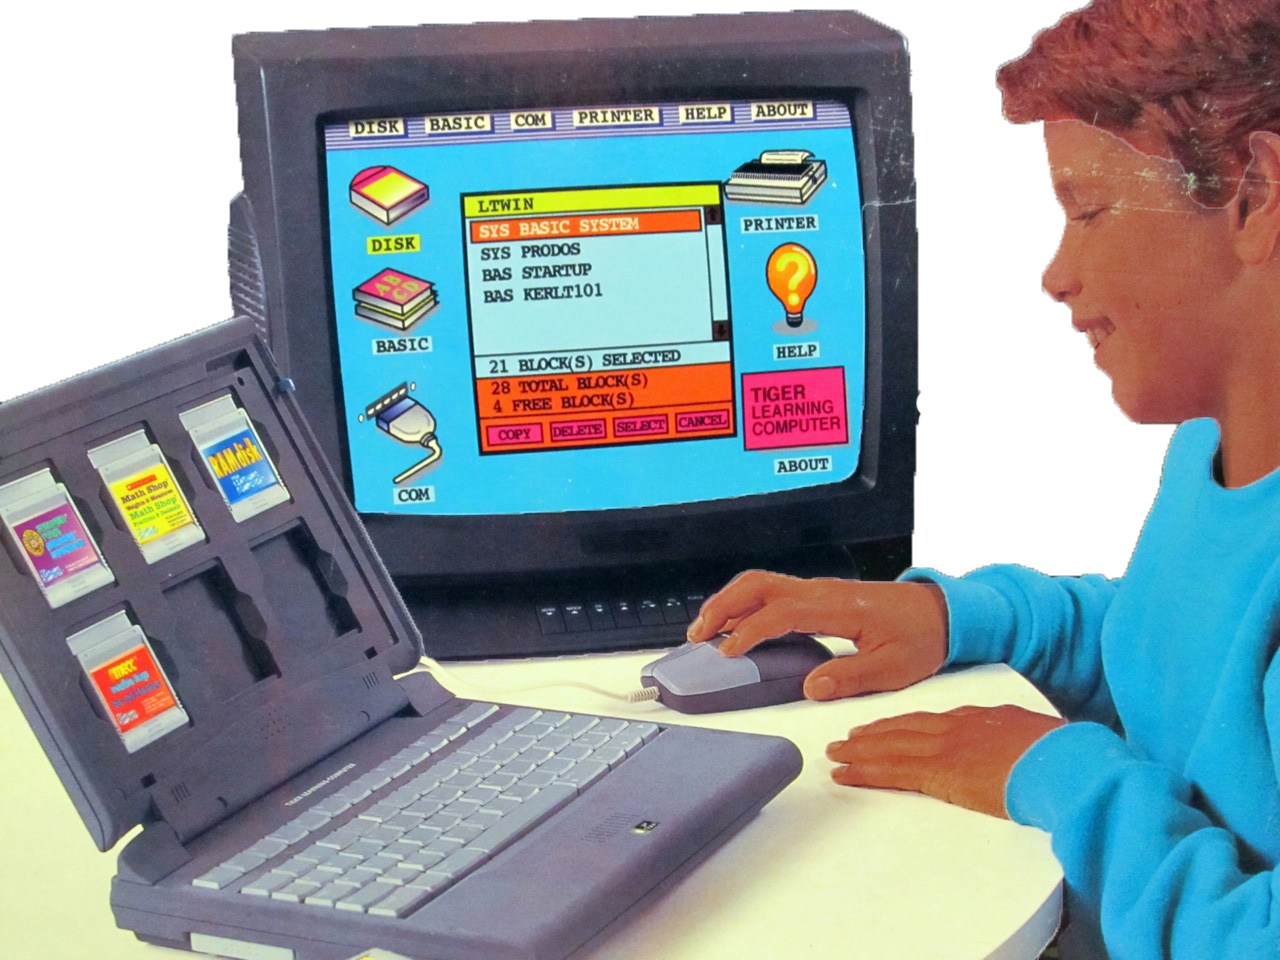 Tiger Learning Computer retail box